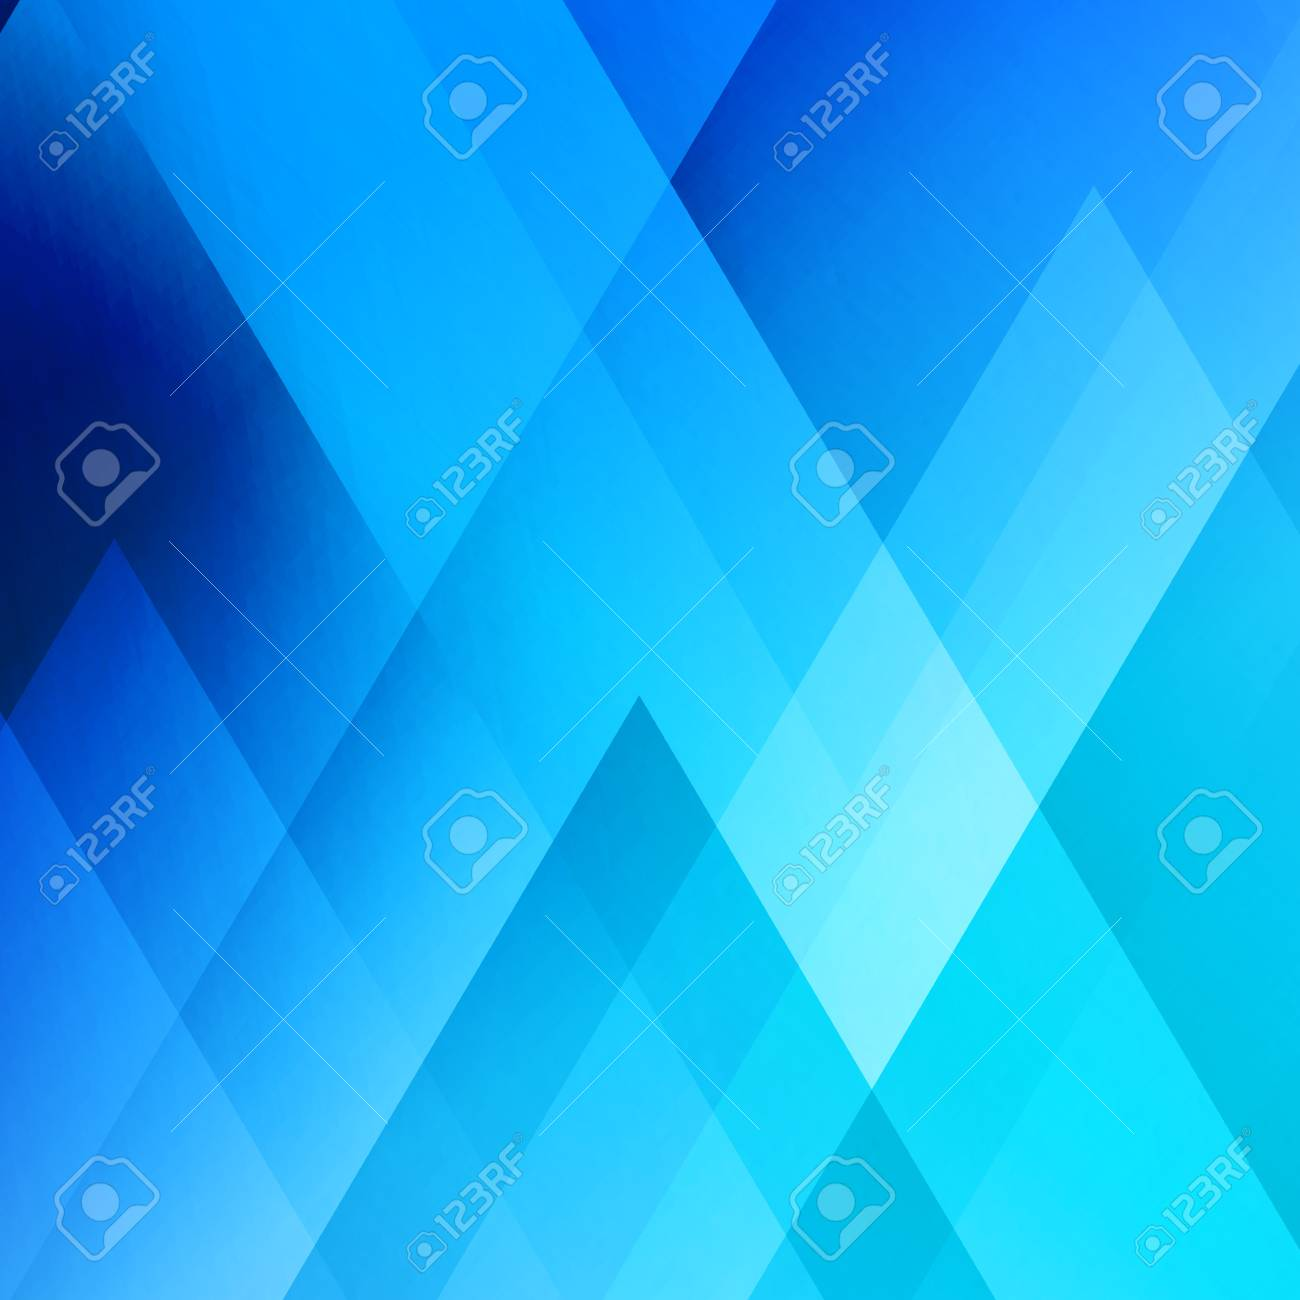 Abstract Light Background Blue Triangle Pattern Blue Triangular